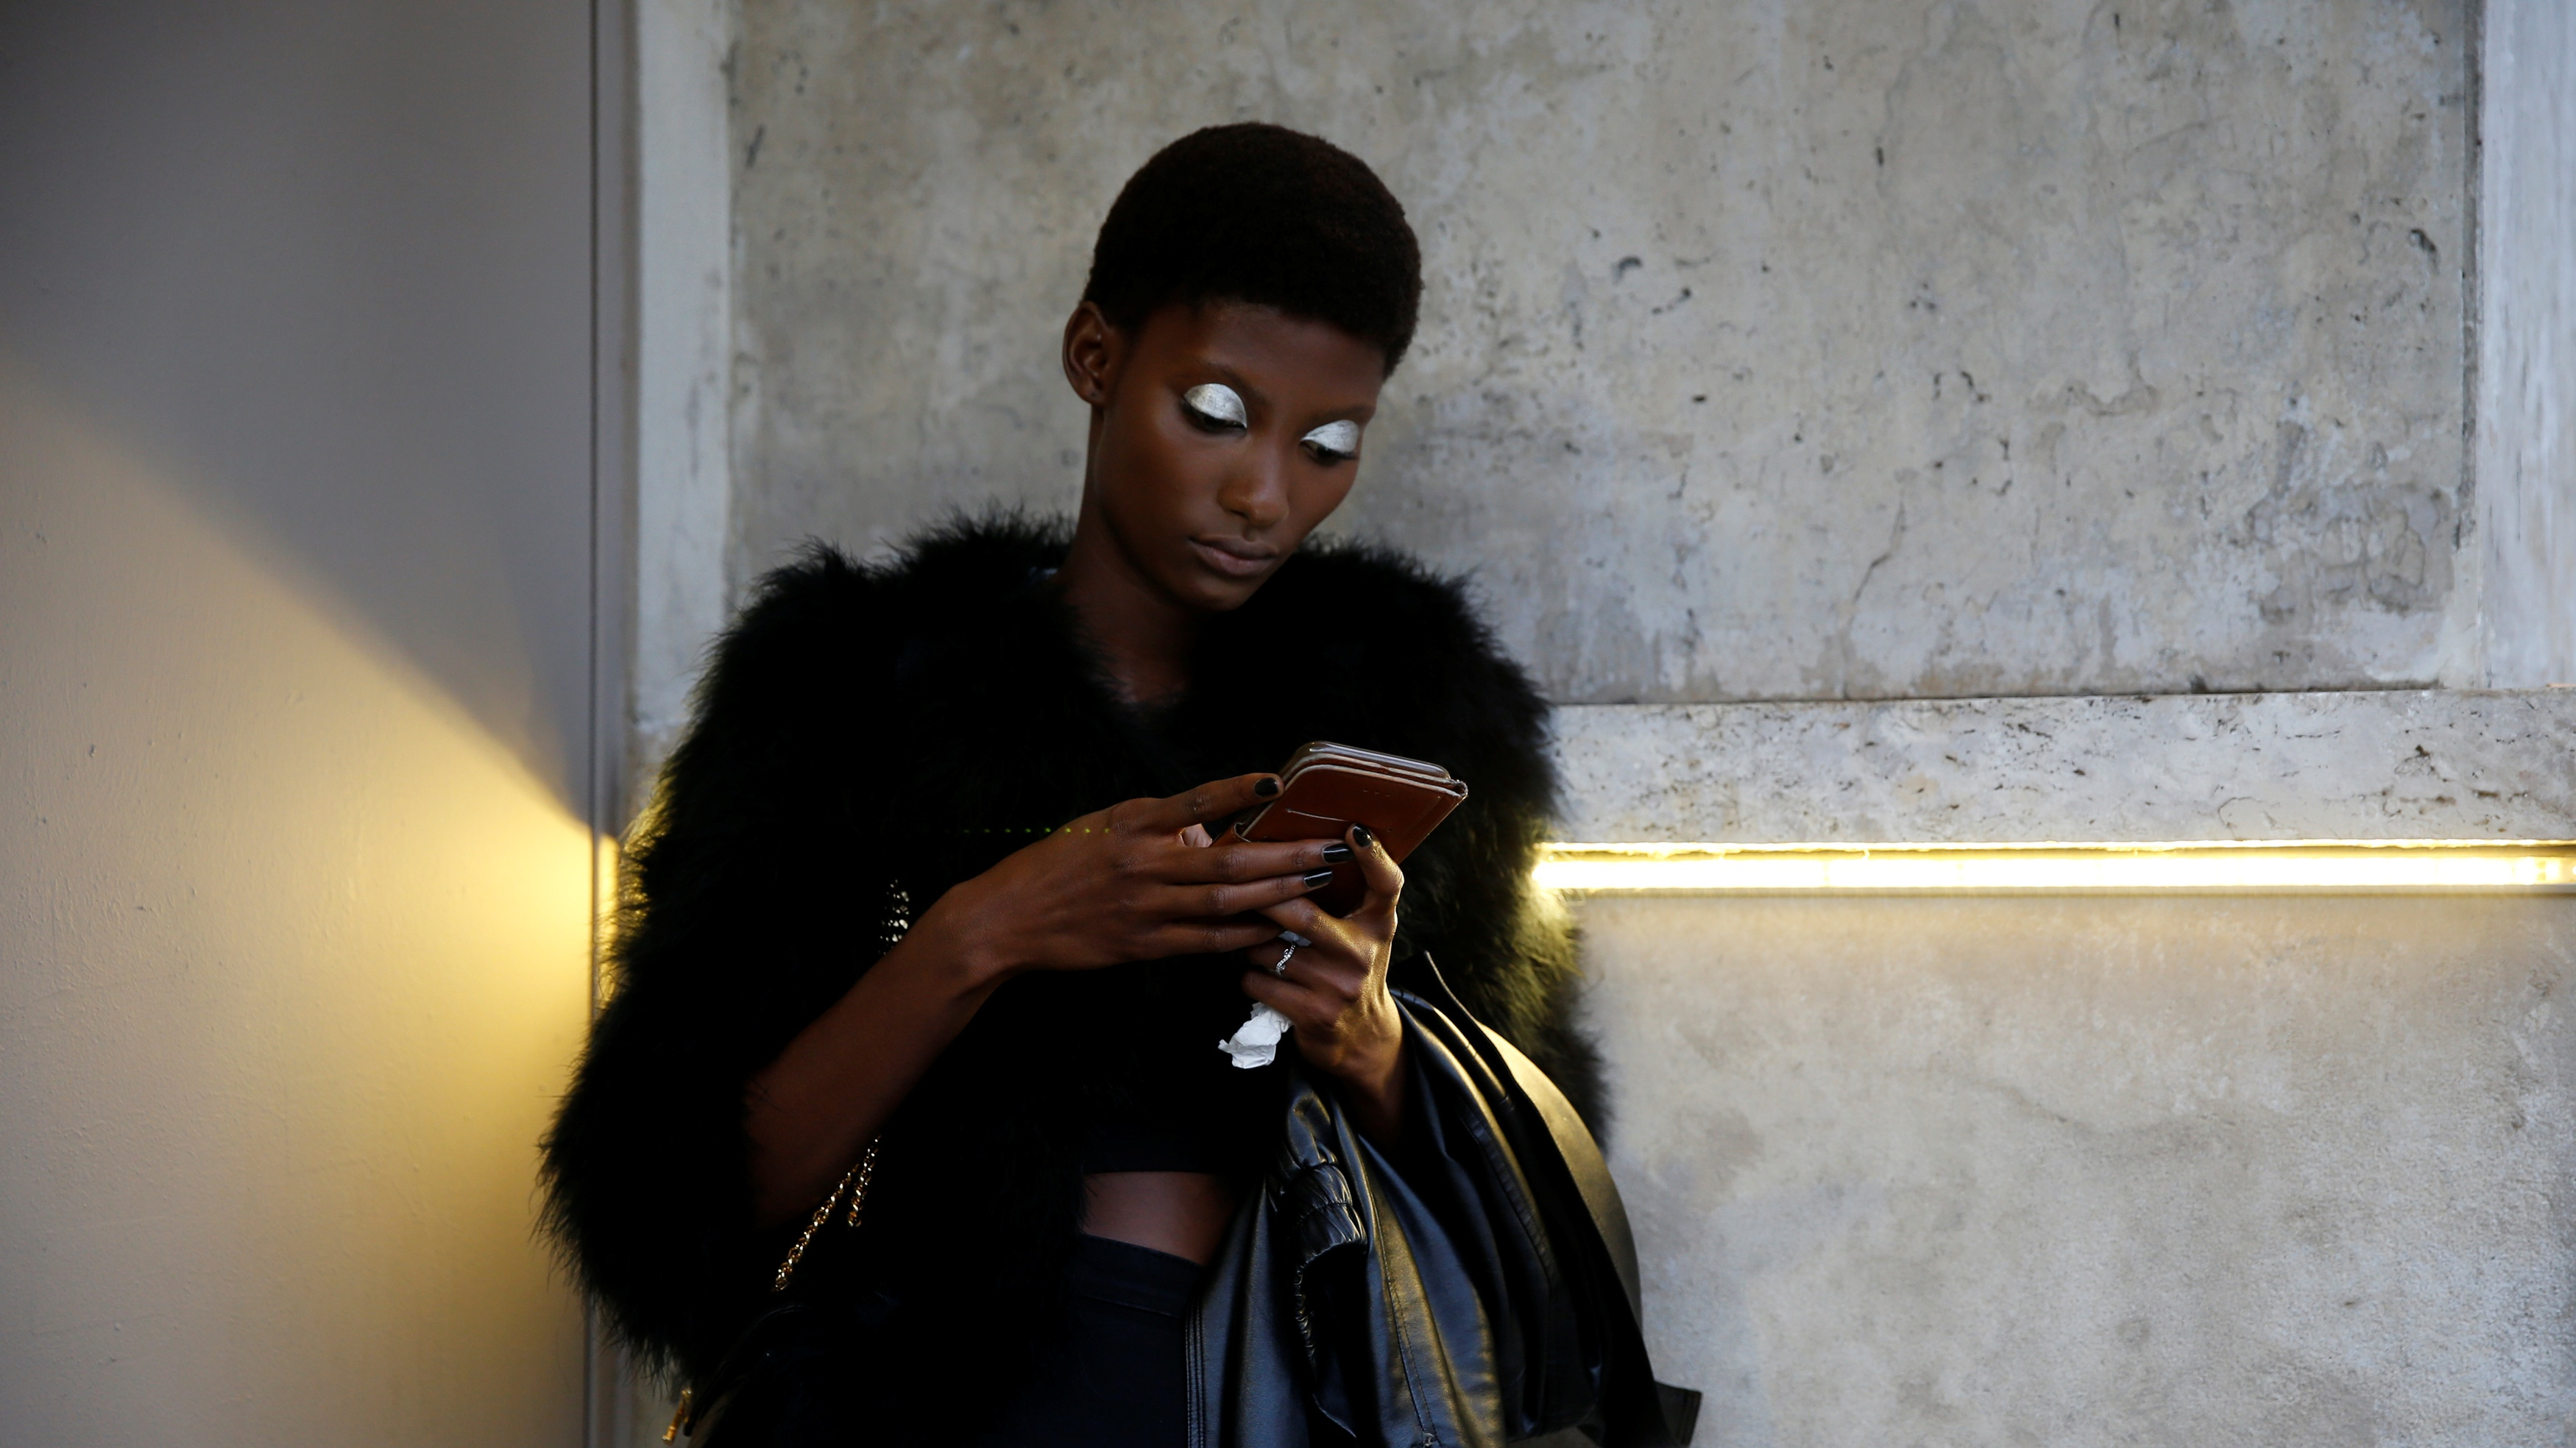 A model uses her mobile phone as she waits before the German designer Lutz Huelle Spring/Summer 2017 women's ready-to-wear collection during Fashion Week in Paris, France September 30, 2016. REUTERS/Gonzalo Fuentes